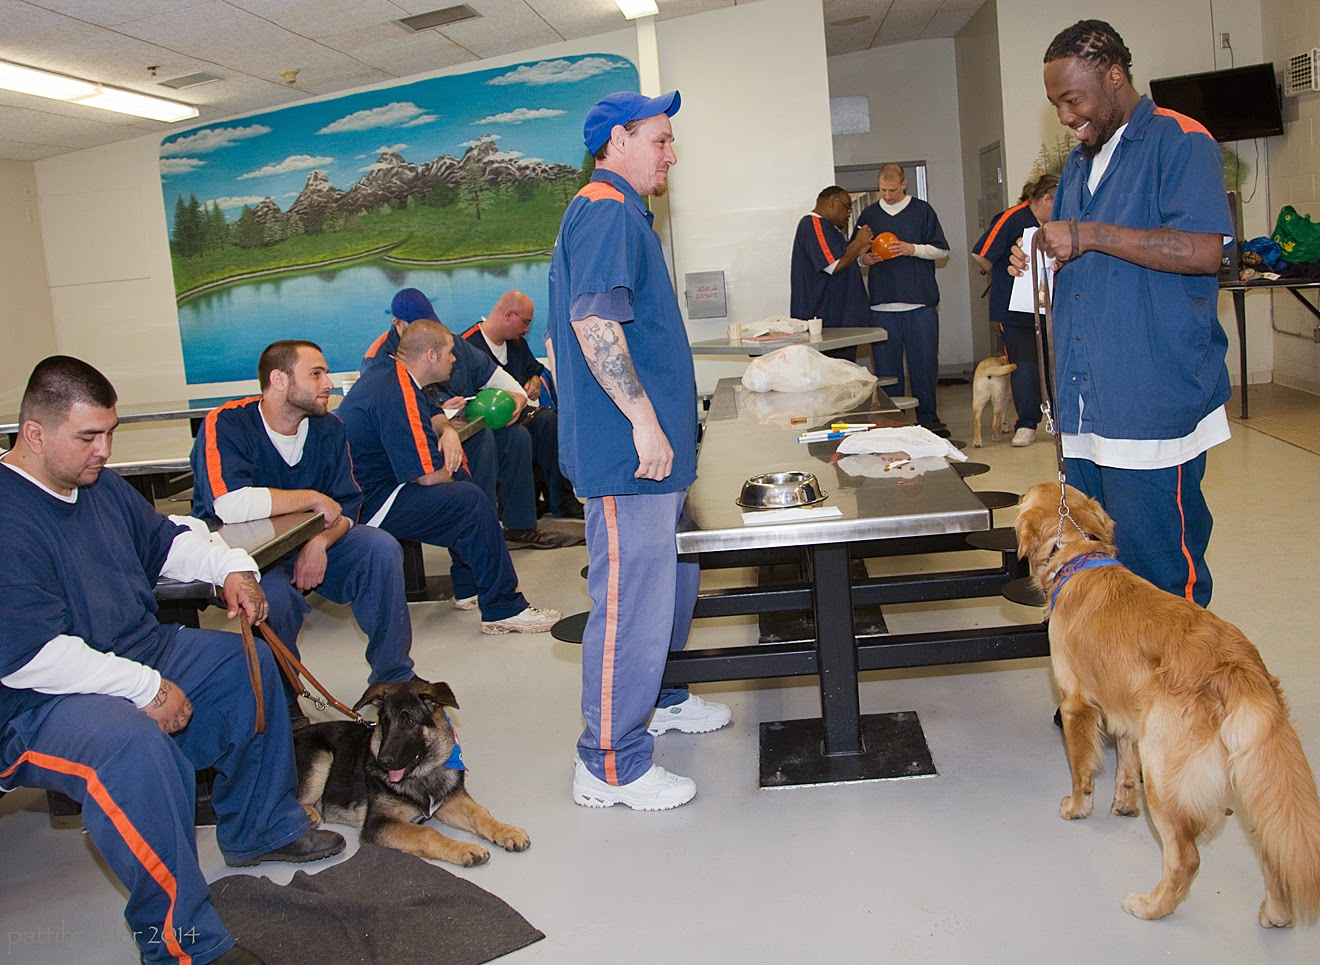 There are five men sitting on the lunch table stools to the far left. They all wear the prison blue uniforms. The first man has a german shepherd puppy lying at his feet. Two men are standing opposite each side of a long lunch table. The man on the far right is african american and he is holding the leash of a golden retriever puppy, who is standing and facing theman. There are three men in the far background. There are plastic bags on the table and a stainless steel dog dish. There is a wall-sized mural in the background on the left, a paining of a mountain lake scene.